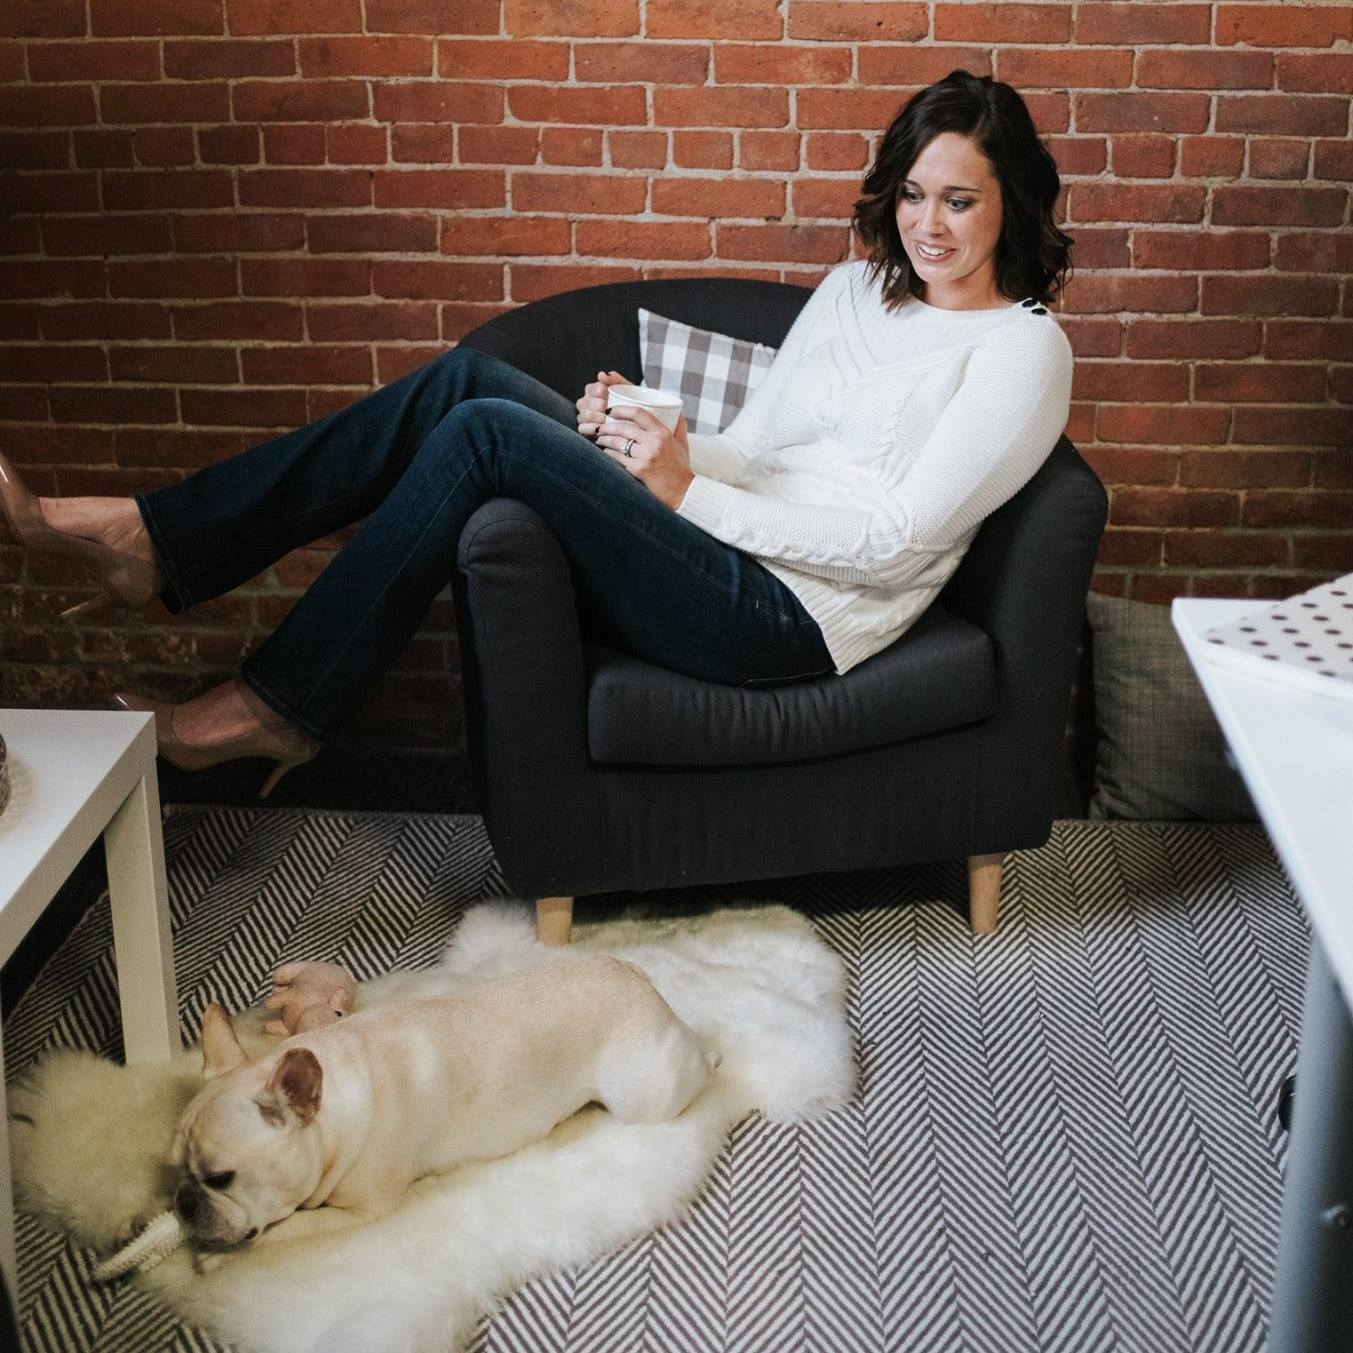 """Taken business to the next level  """"I was stuck in a bit of rut in my business. We were seeking out women who were at a stage in business that we wanted to be and that is why we approached Vanessa. She helped us streamline our business and help implement a clear suite of programs. She has helped take us out of comfort zone to a place where it was a bit scary so that we can evolve and grow. She has certainly stretched us which has beee uncomfortable but it has forced us to do things that we were avoiding. I now enjoy going into the office instead of feeling overwhelmed. She has been motivating and supportive and worth every penny of the investment """"   - Amy, Marketing + Small Business Strategist (watch Amy's story  HERE )"""